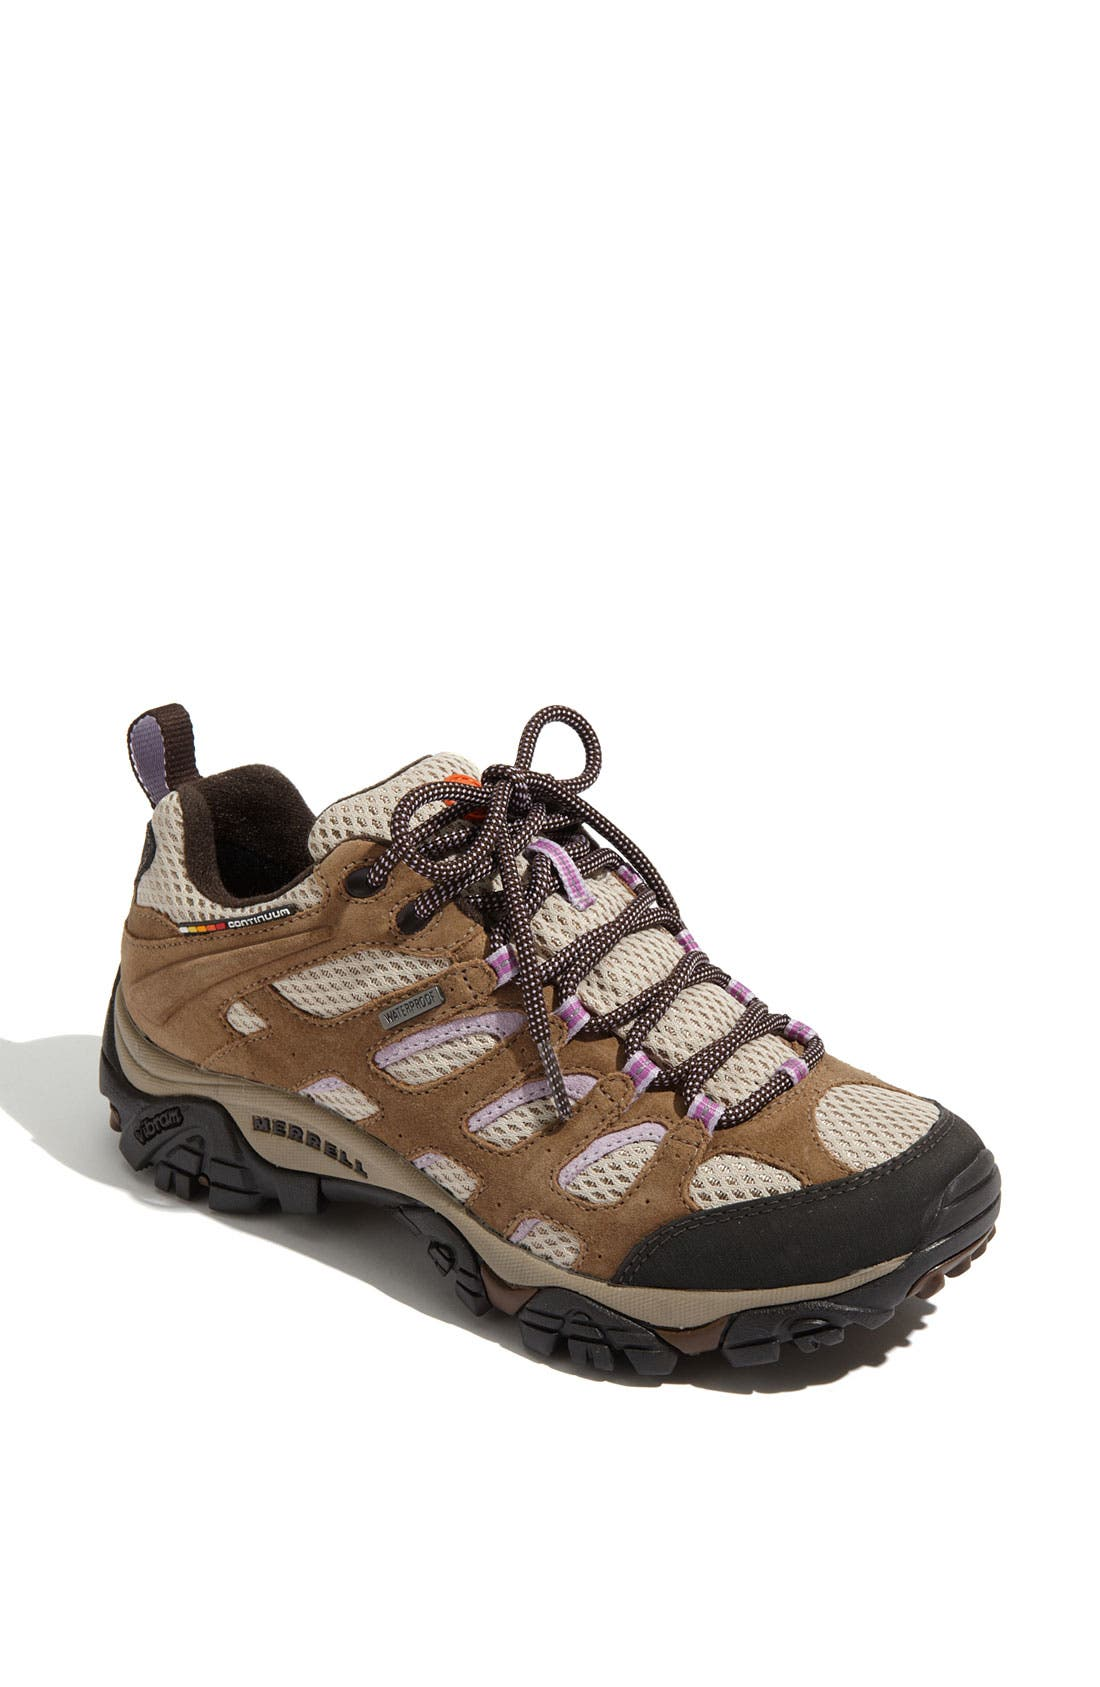 Main Image - Merrell 'Moab Waterproof' Trail Shoe (Women)